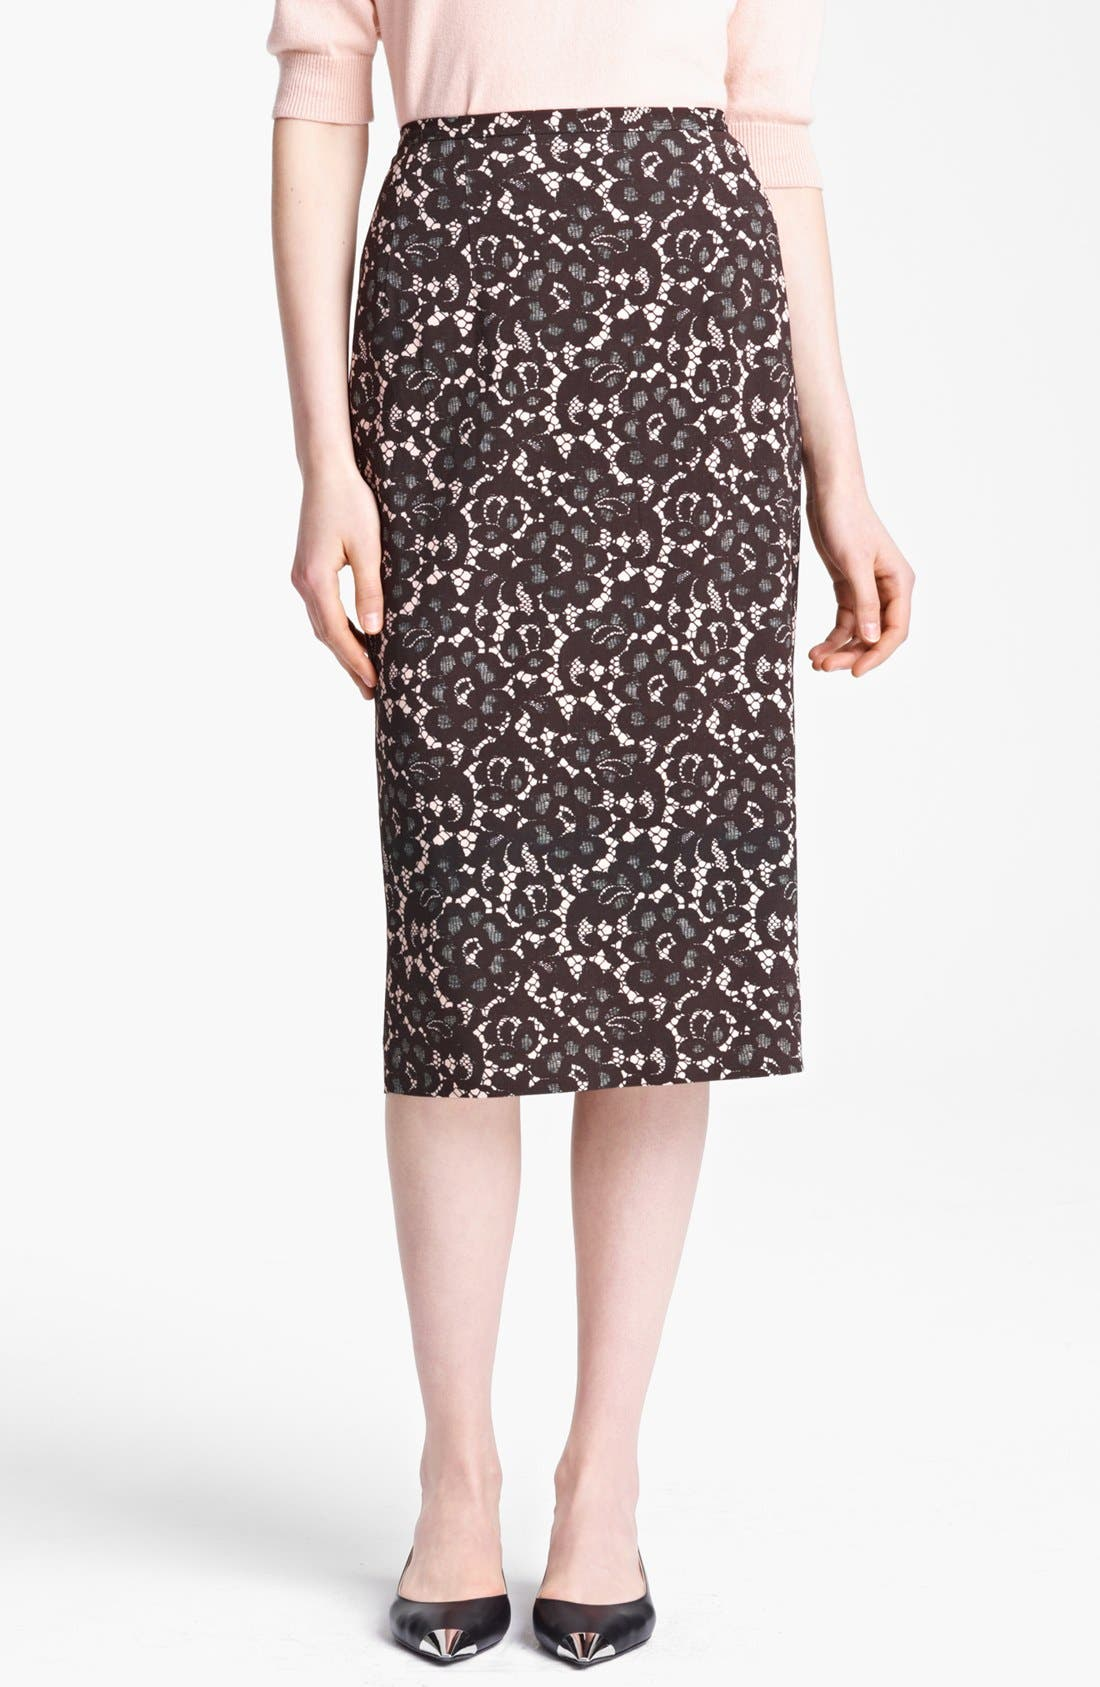 Main Image - Michael Kors Guipure Print Stretch Cady Pencil Skirt